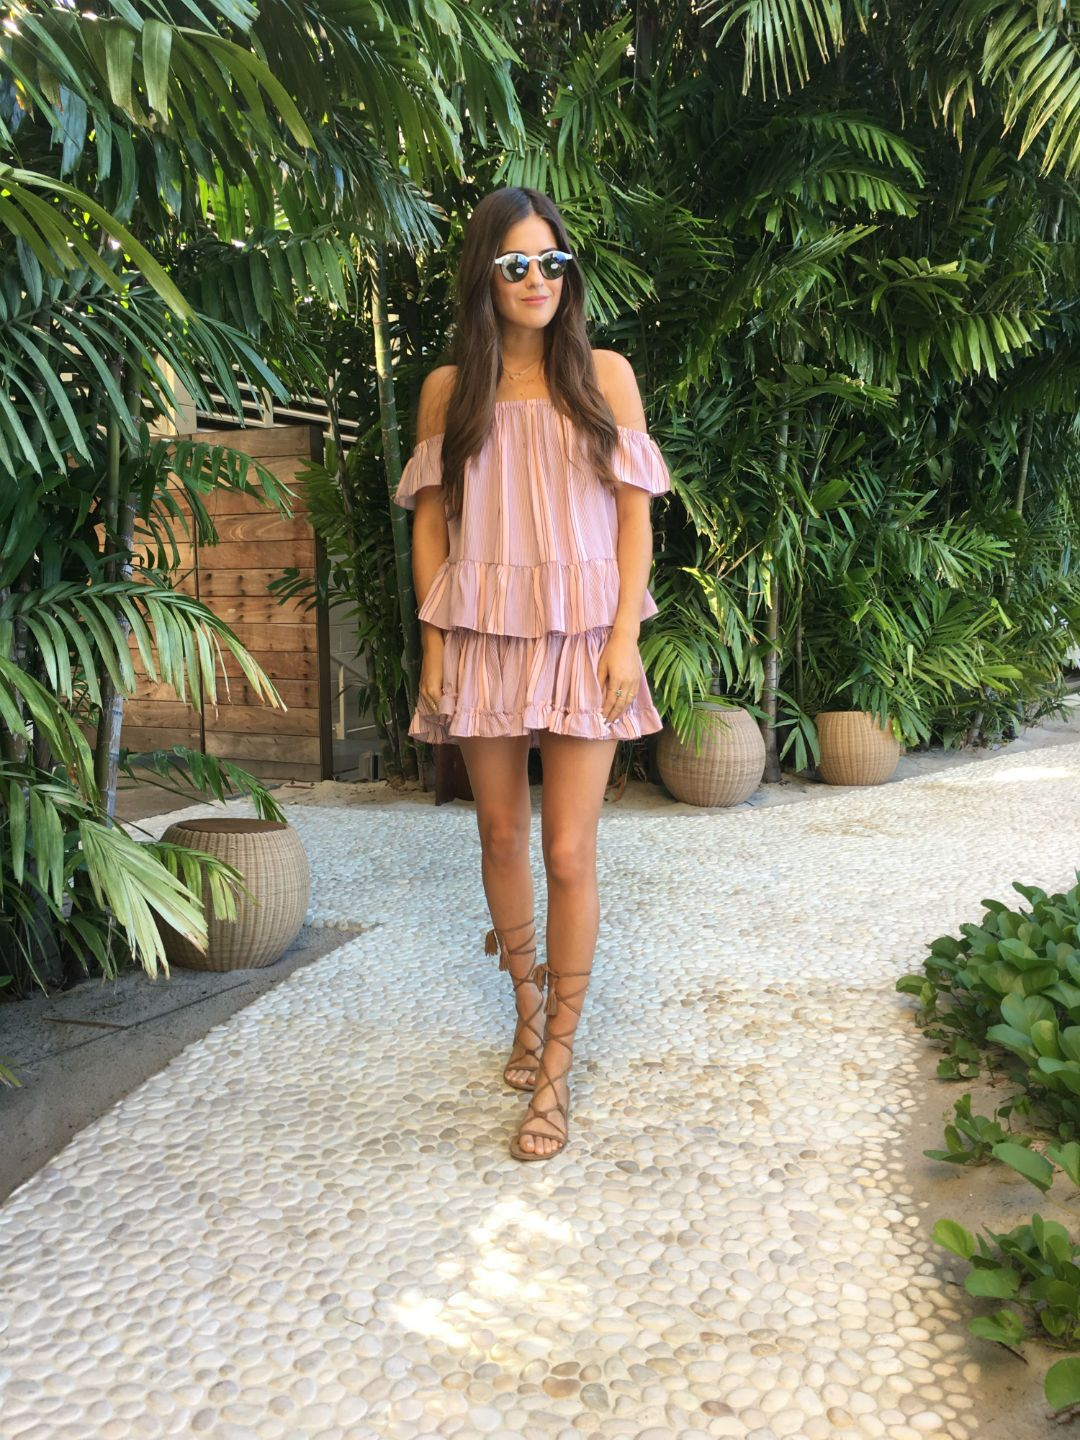 20dbd7a0656d A pair of strappy gladiator sandals are a must have if you want to achieve  a simple rustic style like this one, worn by Paola Alberdi.